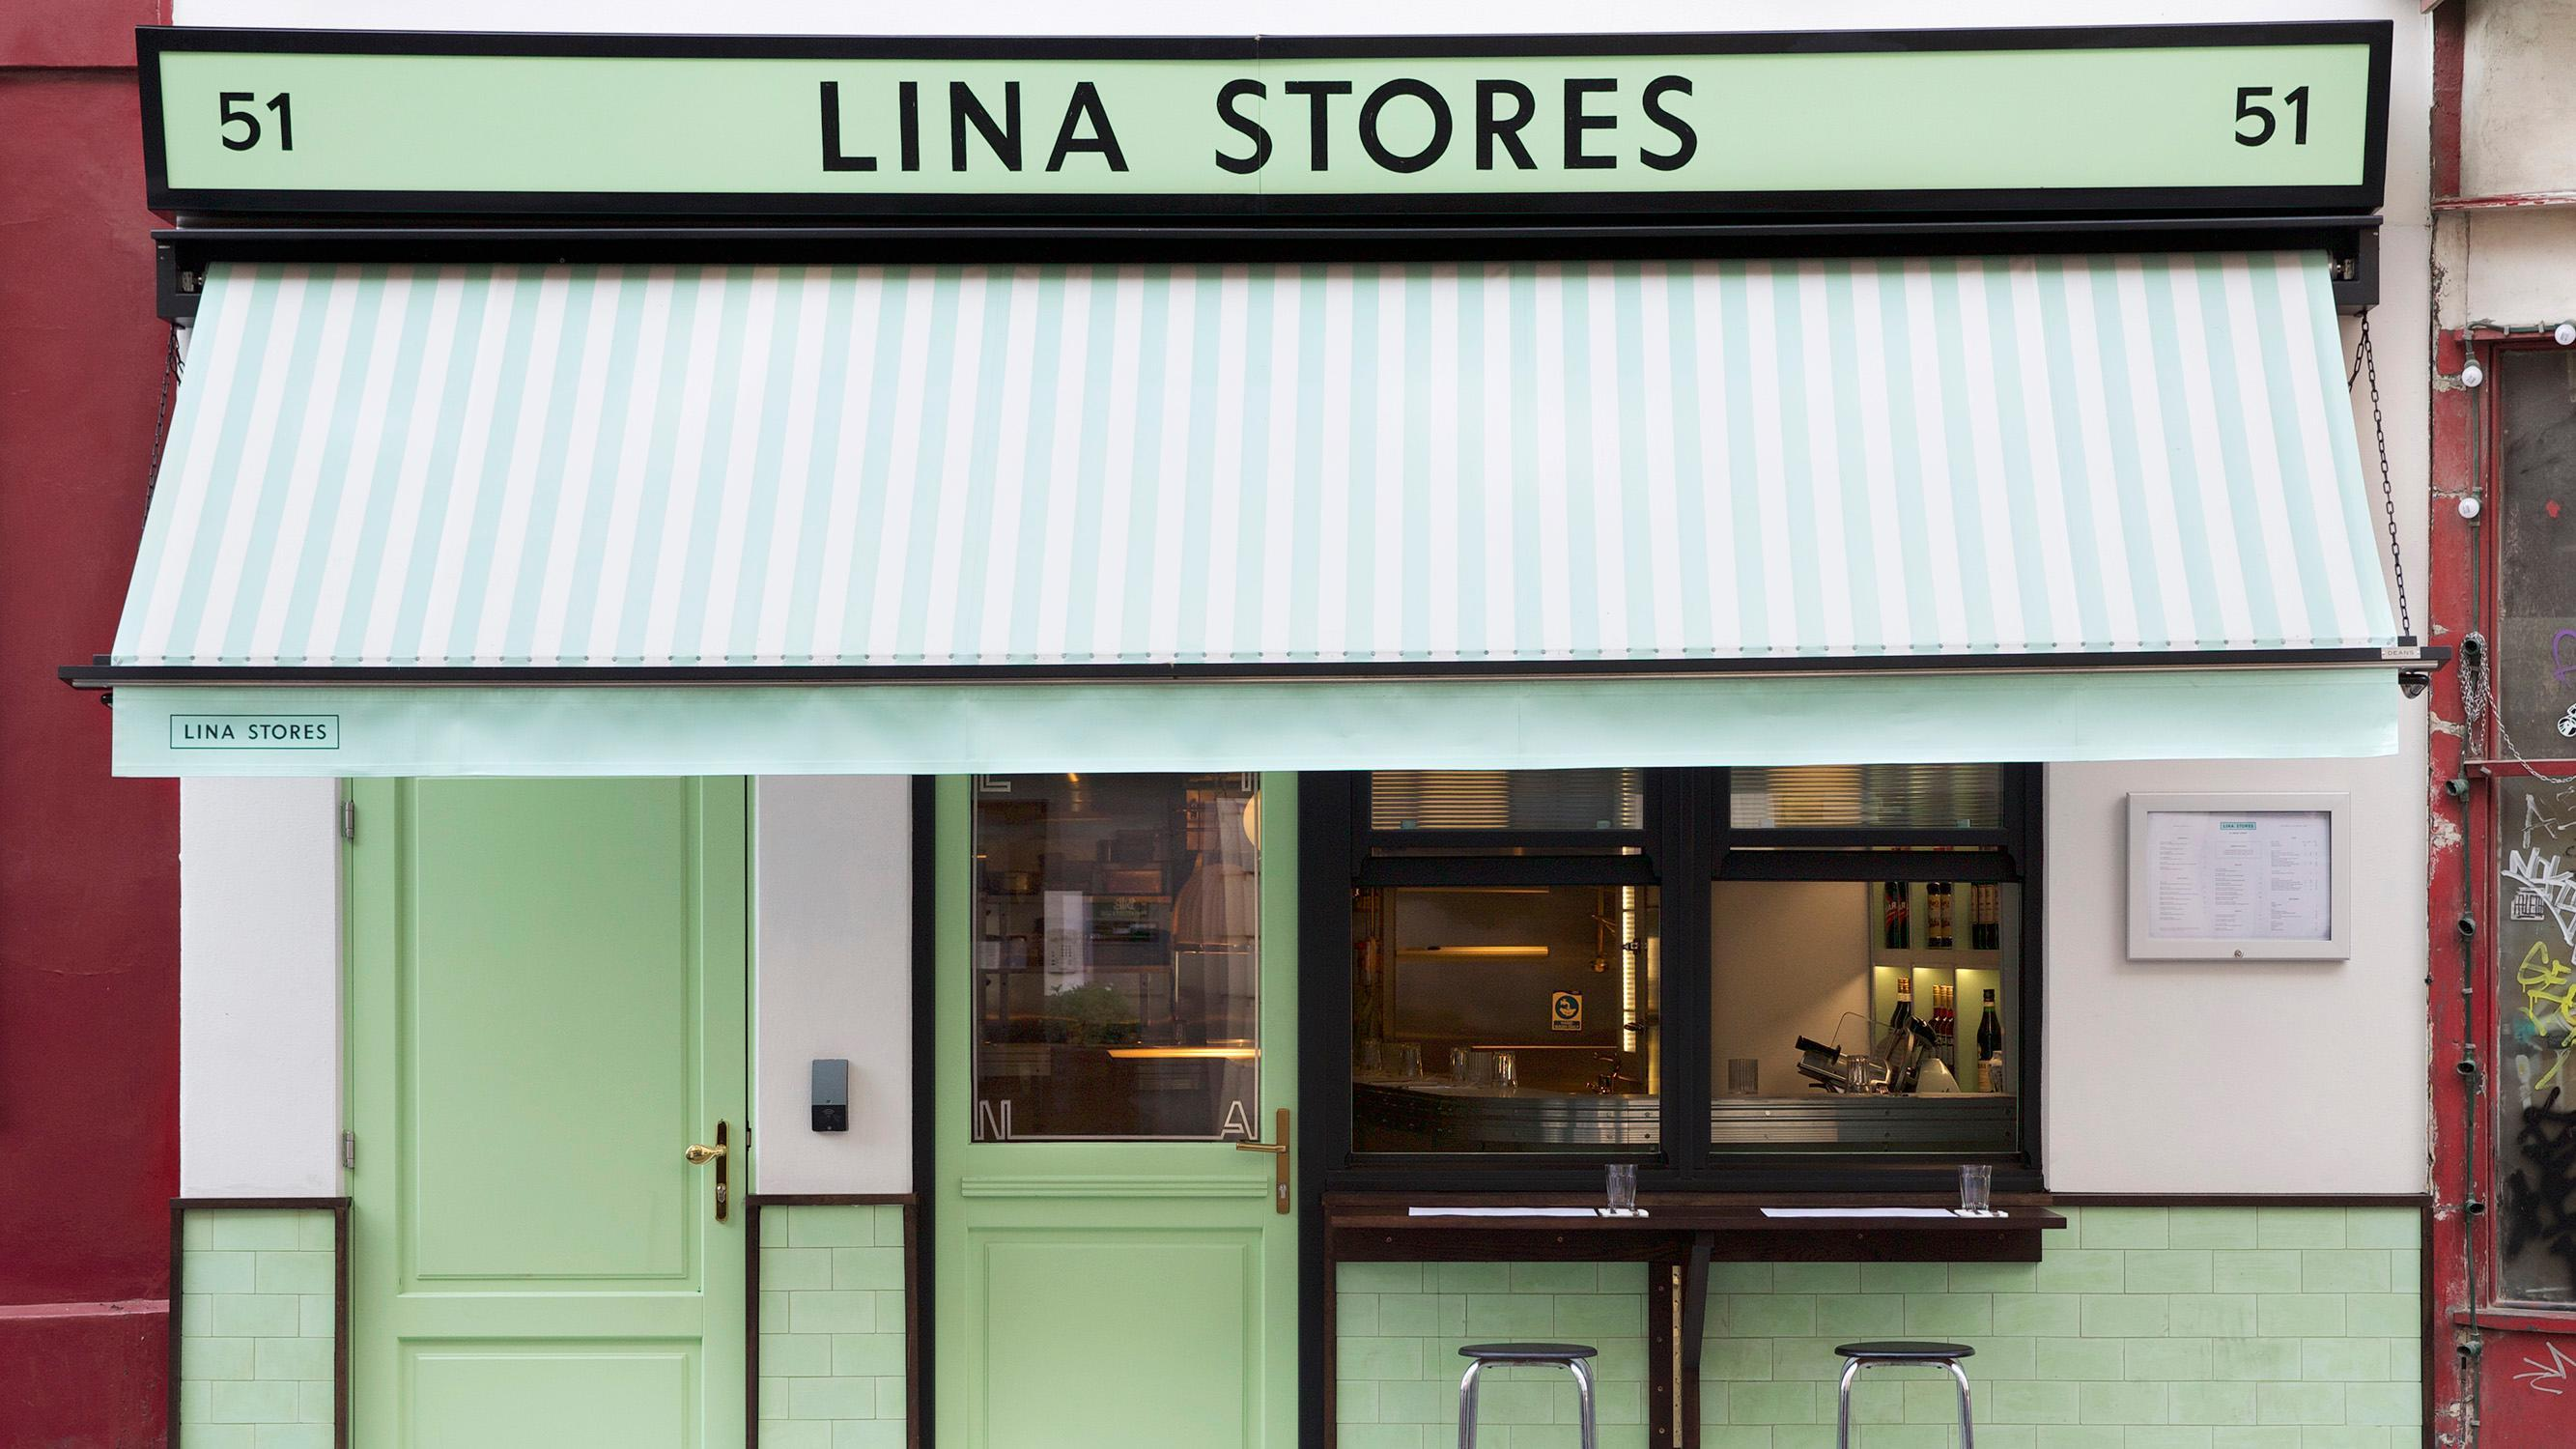 Resturant Stores Restaurant Review Marina O Loughlin On Lina Stores Soho The